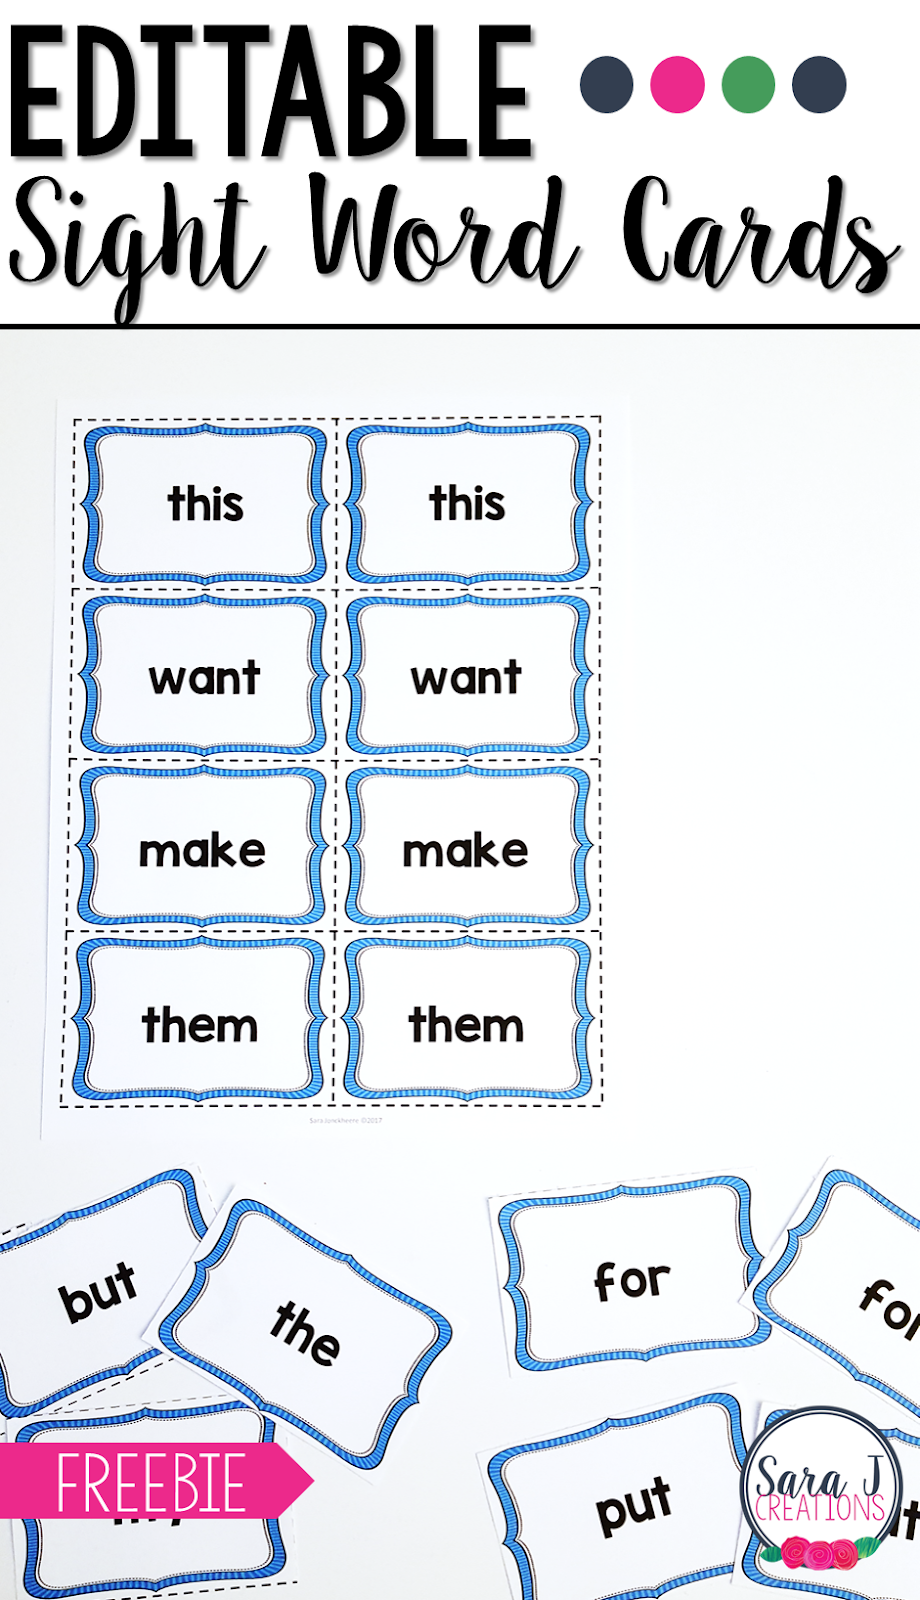 Editable sight word cards